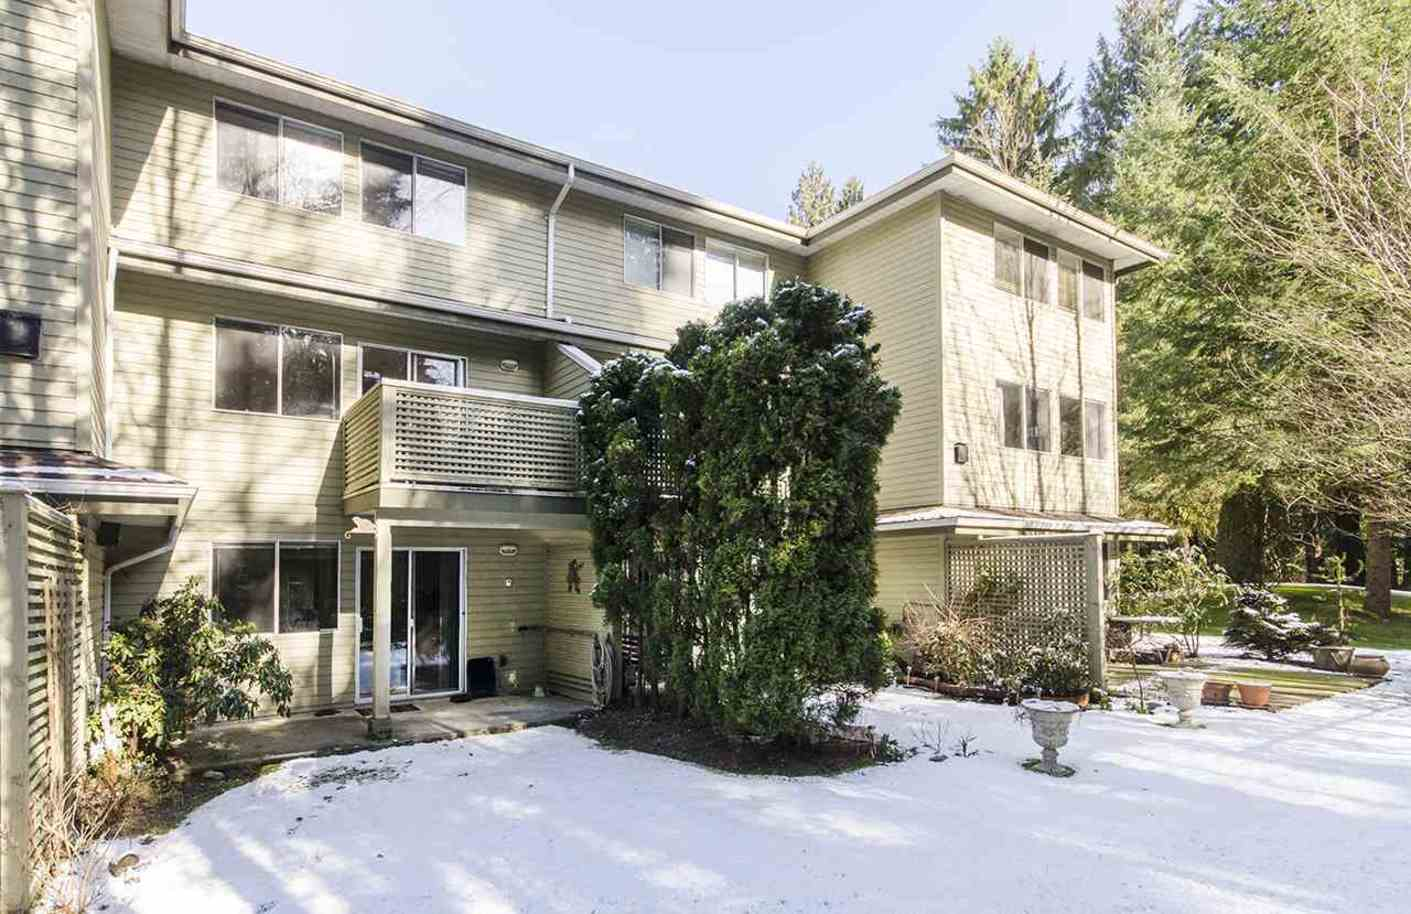 1386-lincoln-drive-oxford-heights-port-coquitlam-17 at 168 - 1386 Lincoln Drive, Oxford Heights, Port Coquitlam